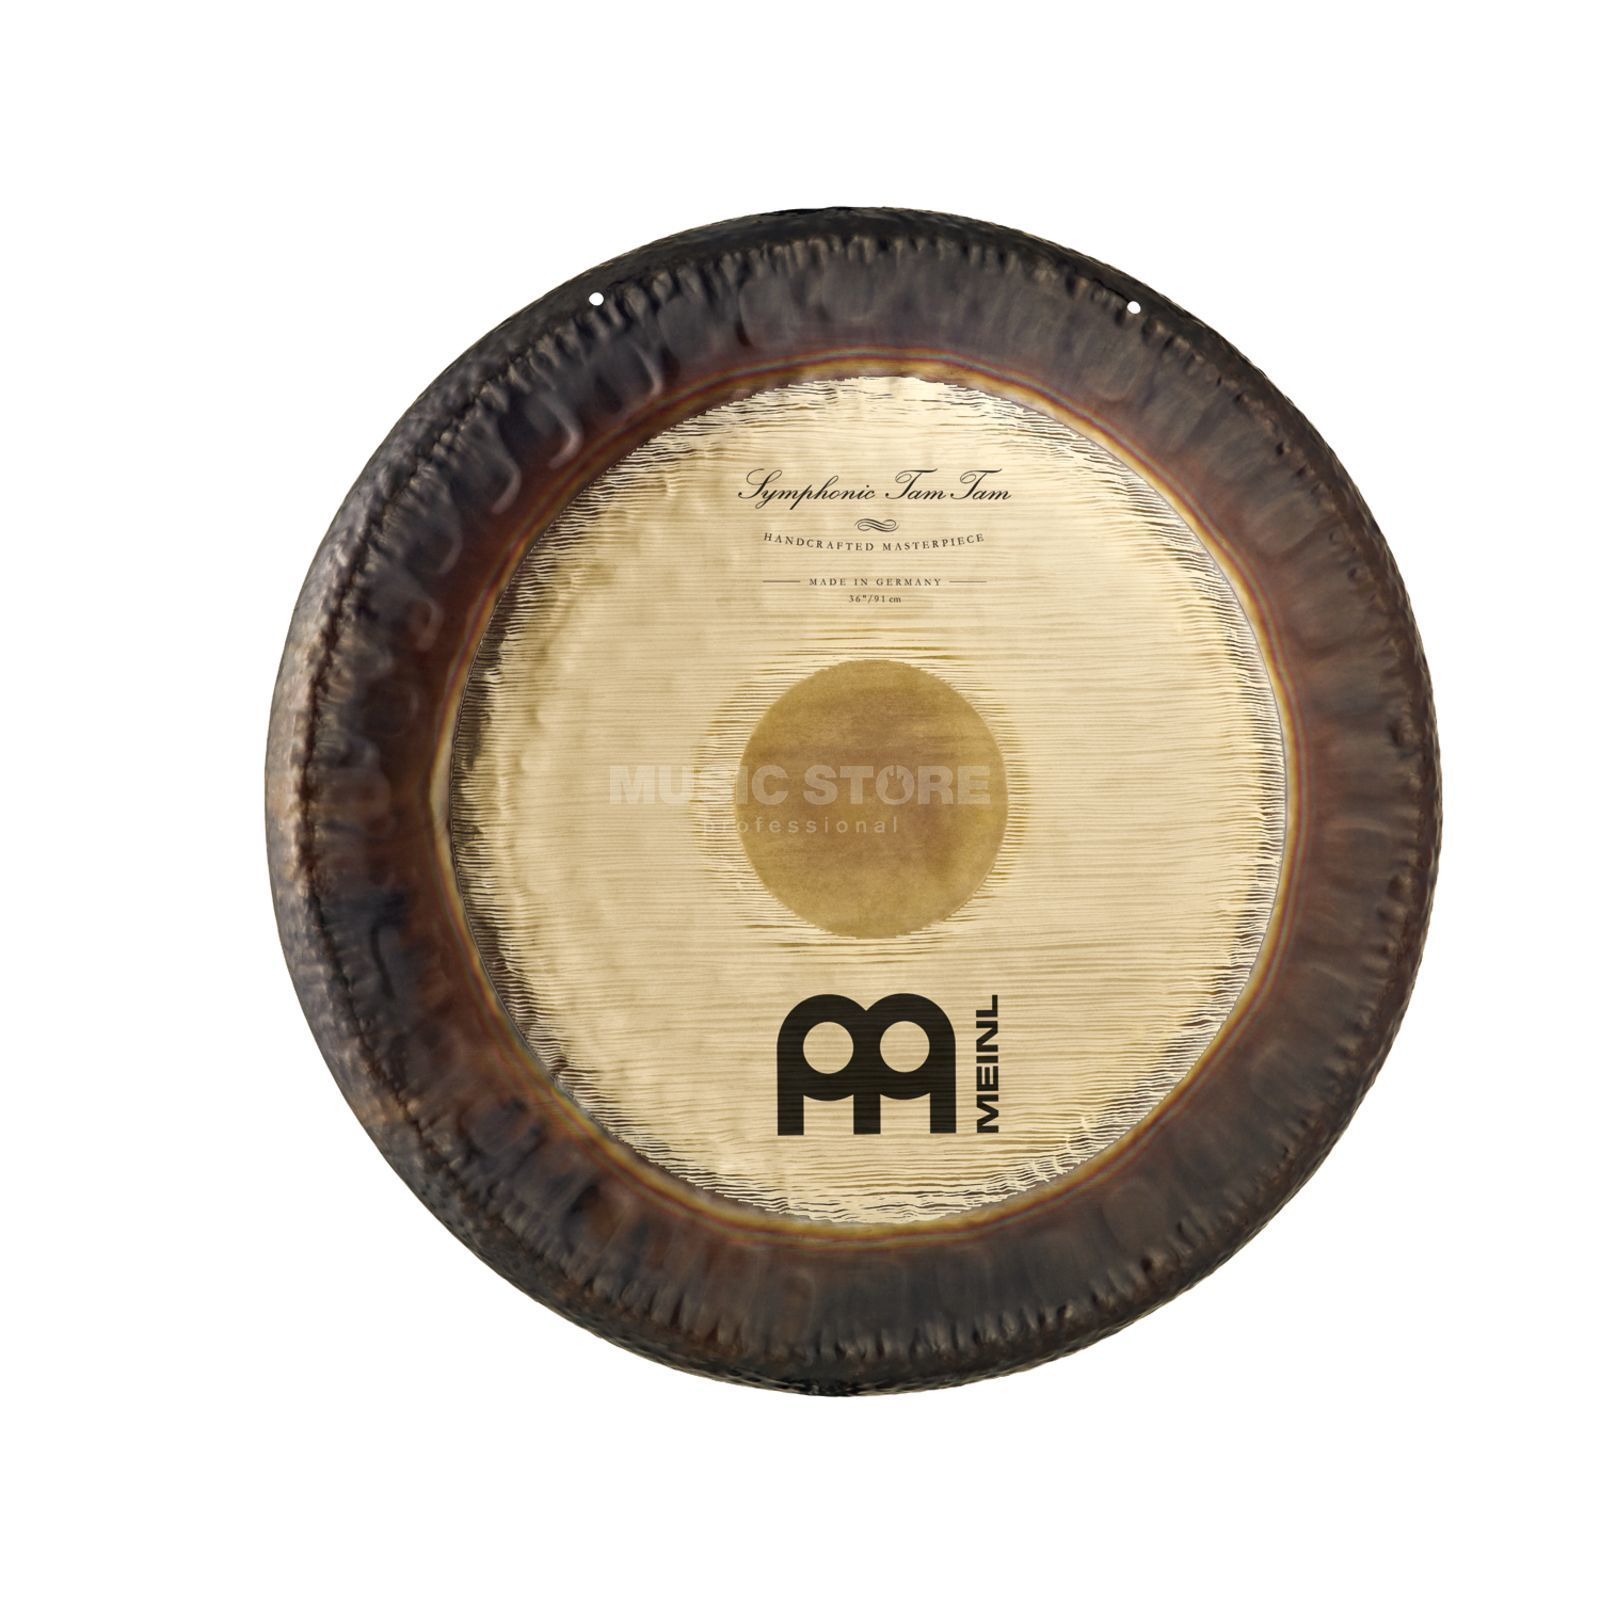 "Meinl Symphonic Tam Tam 36"" Gong, SY-TT37 Product Image"